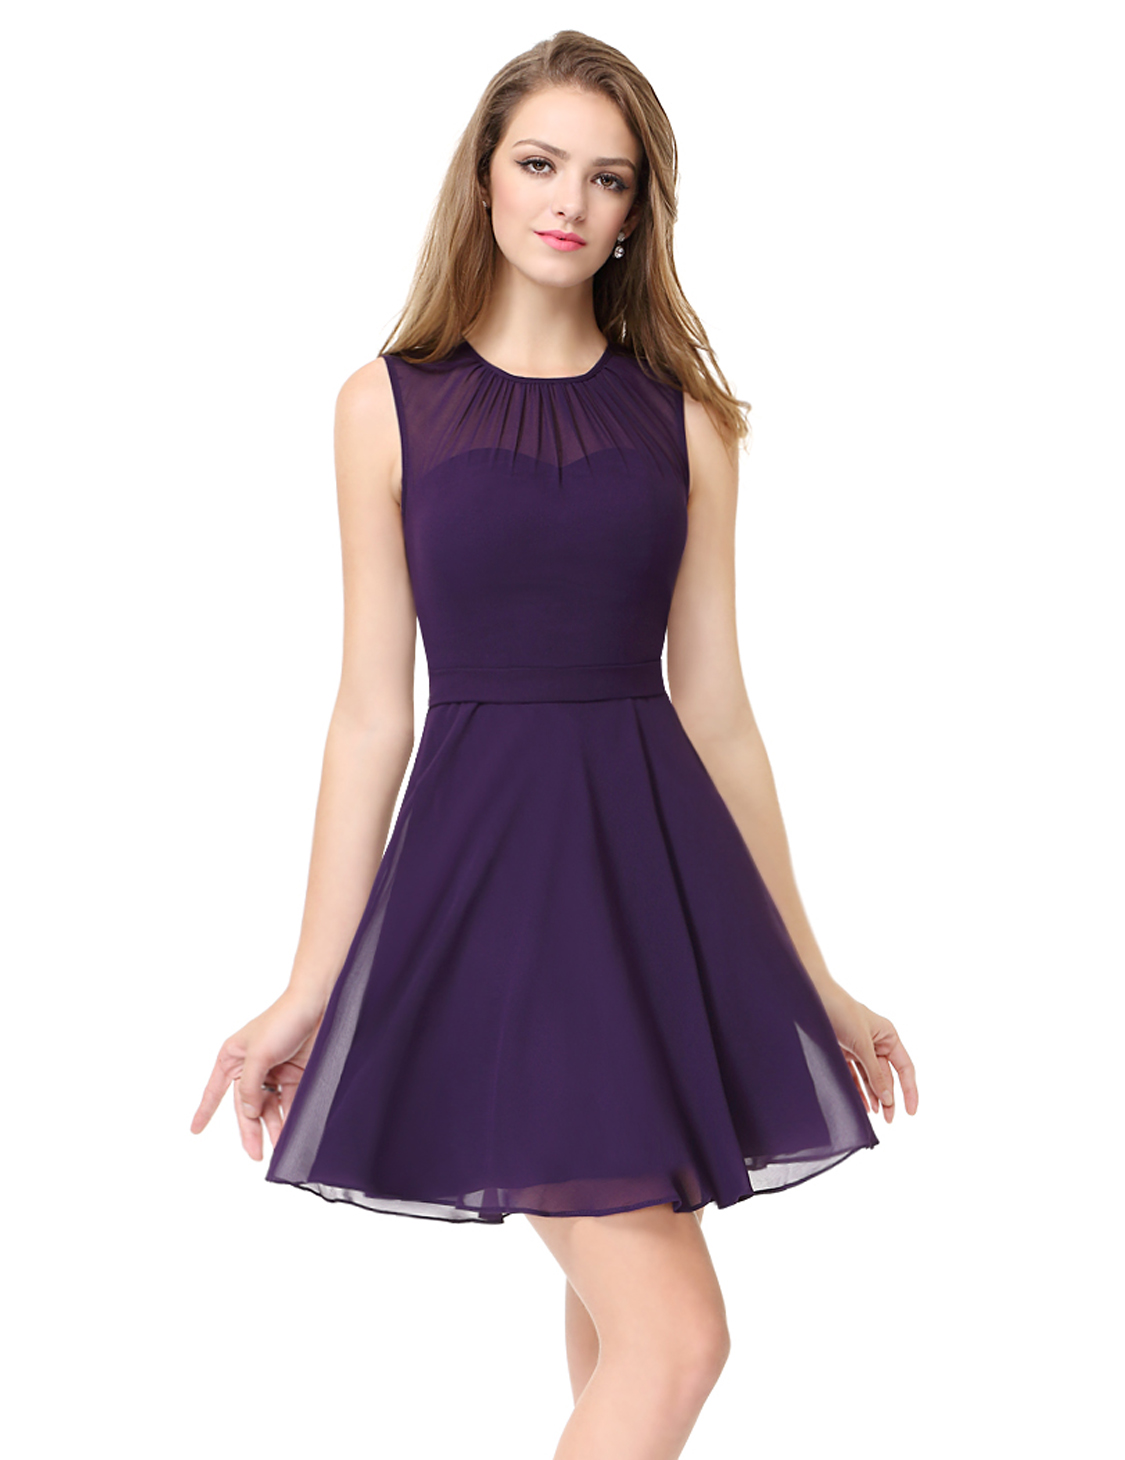 Short Bridesmaid Dress Chiffon Round Neck Homecoming Dresses 05253 ...